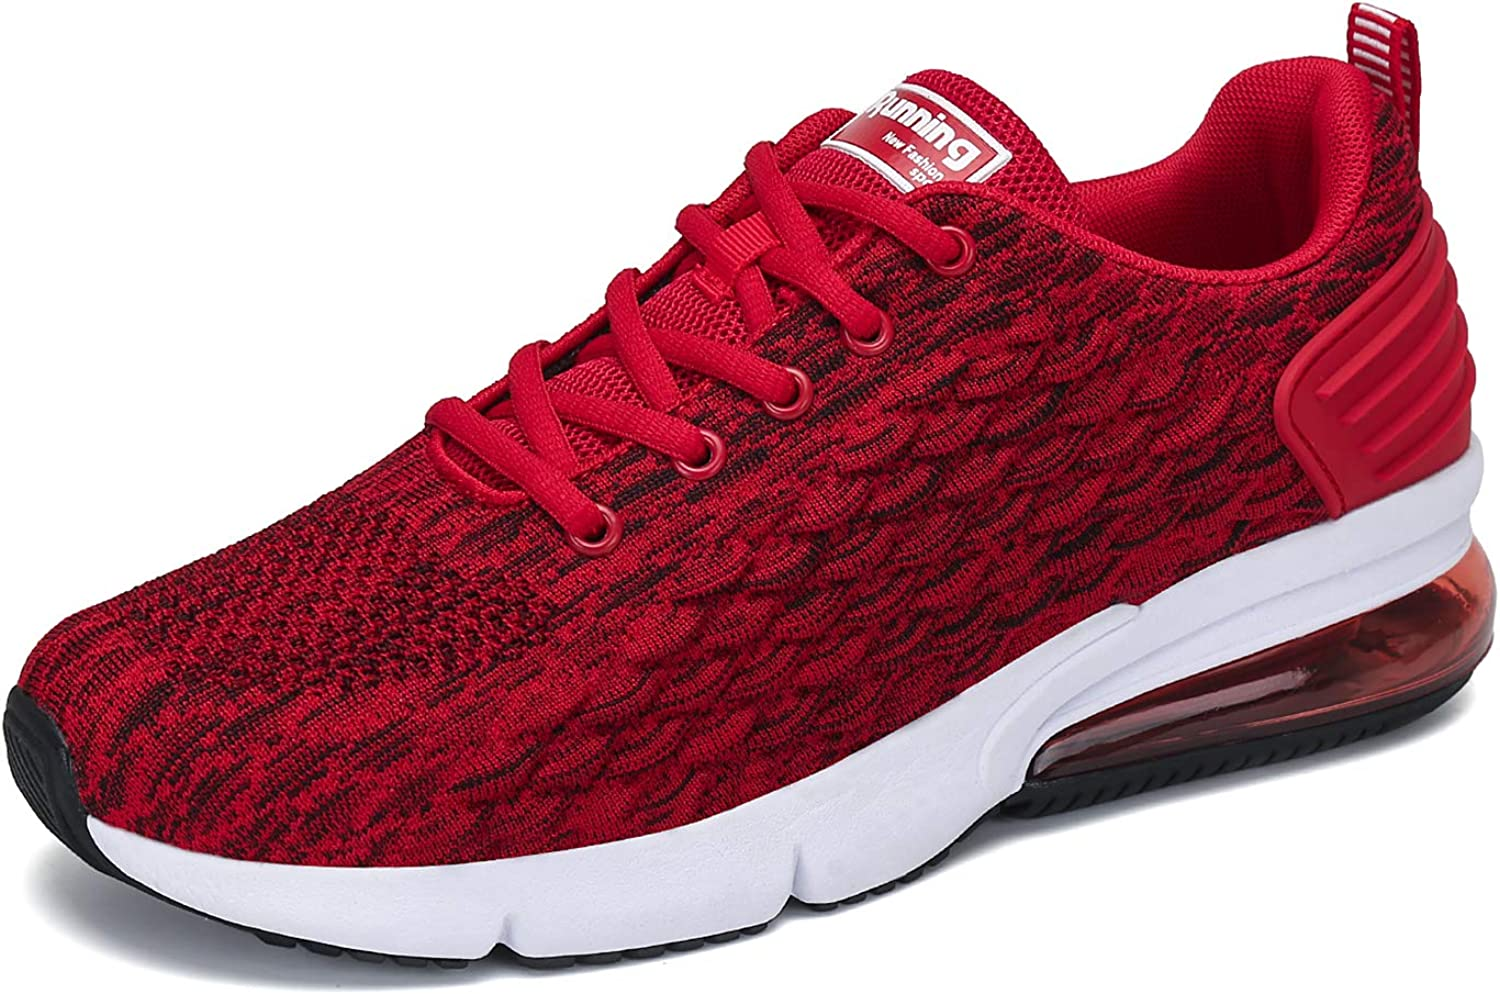 FLARUT Men s Running Shoes Fashion Sports Sneakers Knit Air Cushion Lightweight Casual Athletic Gym Tennis Training Walking